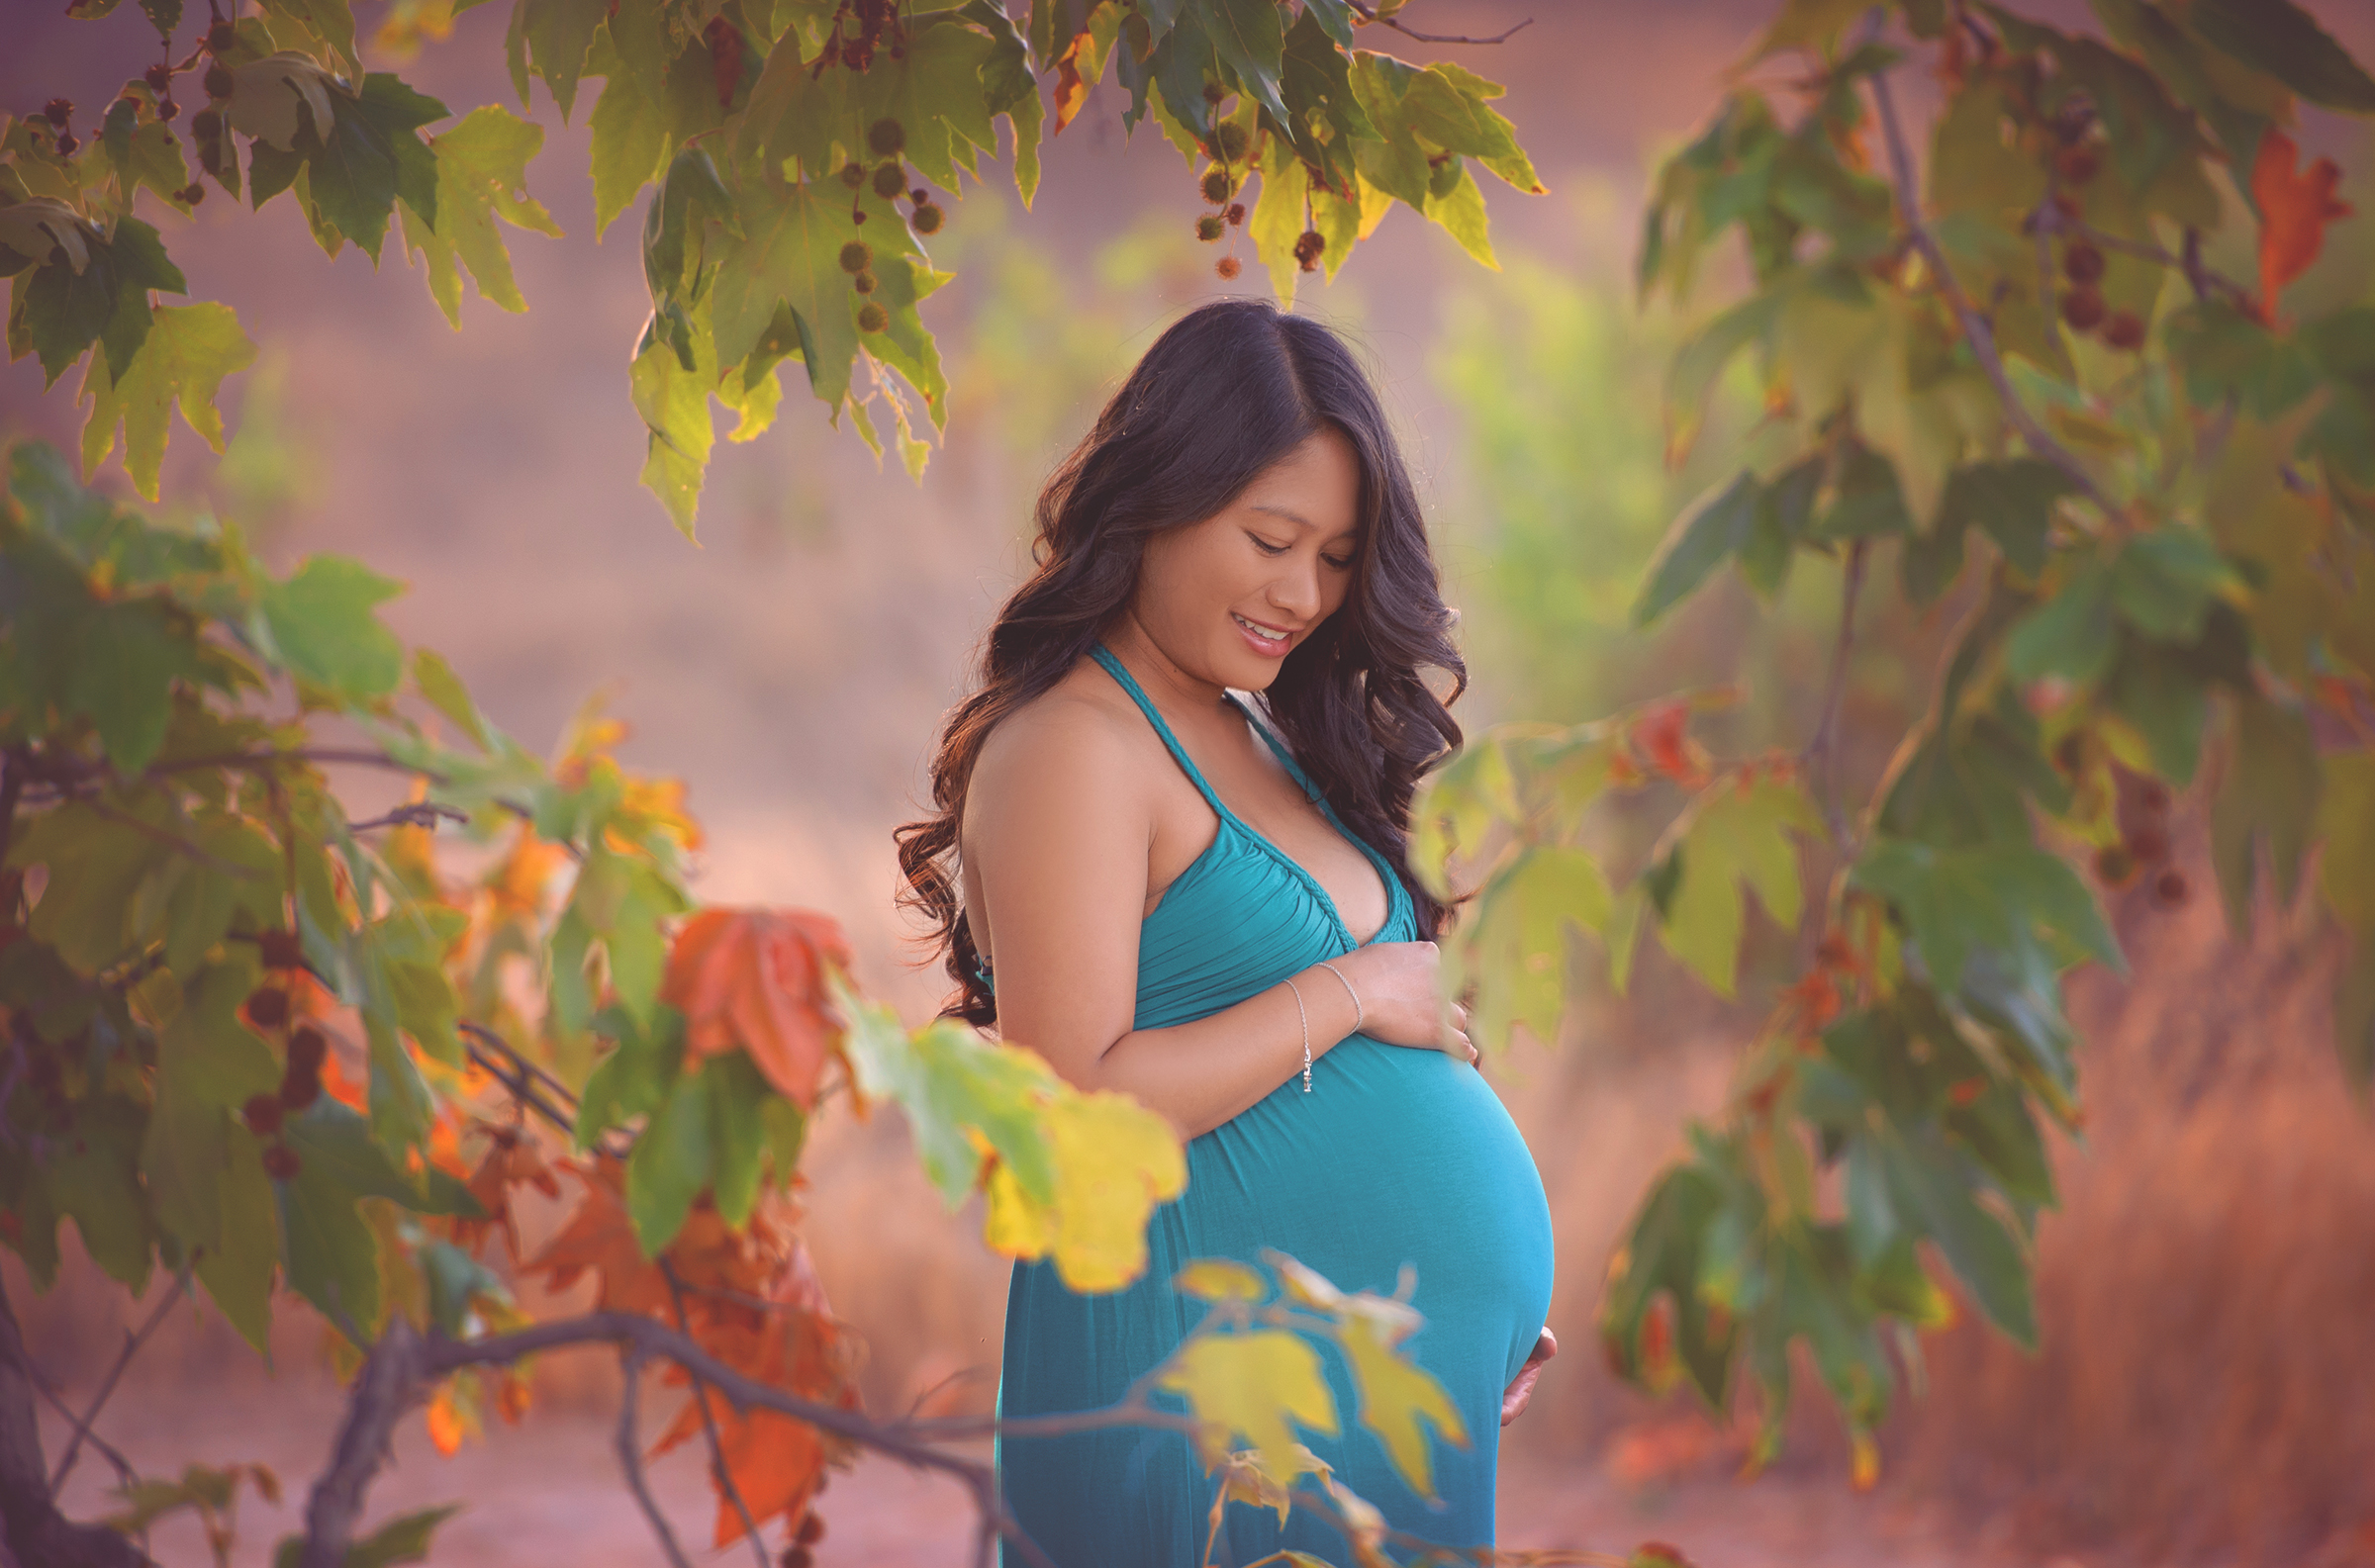 Maternity session through a heart shaped cutout of leaves in San Diego